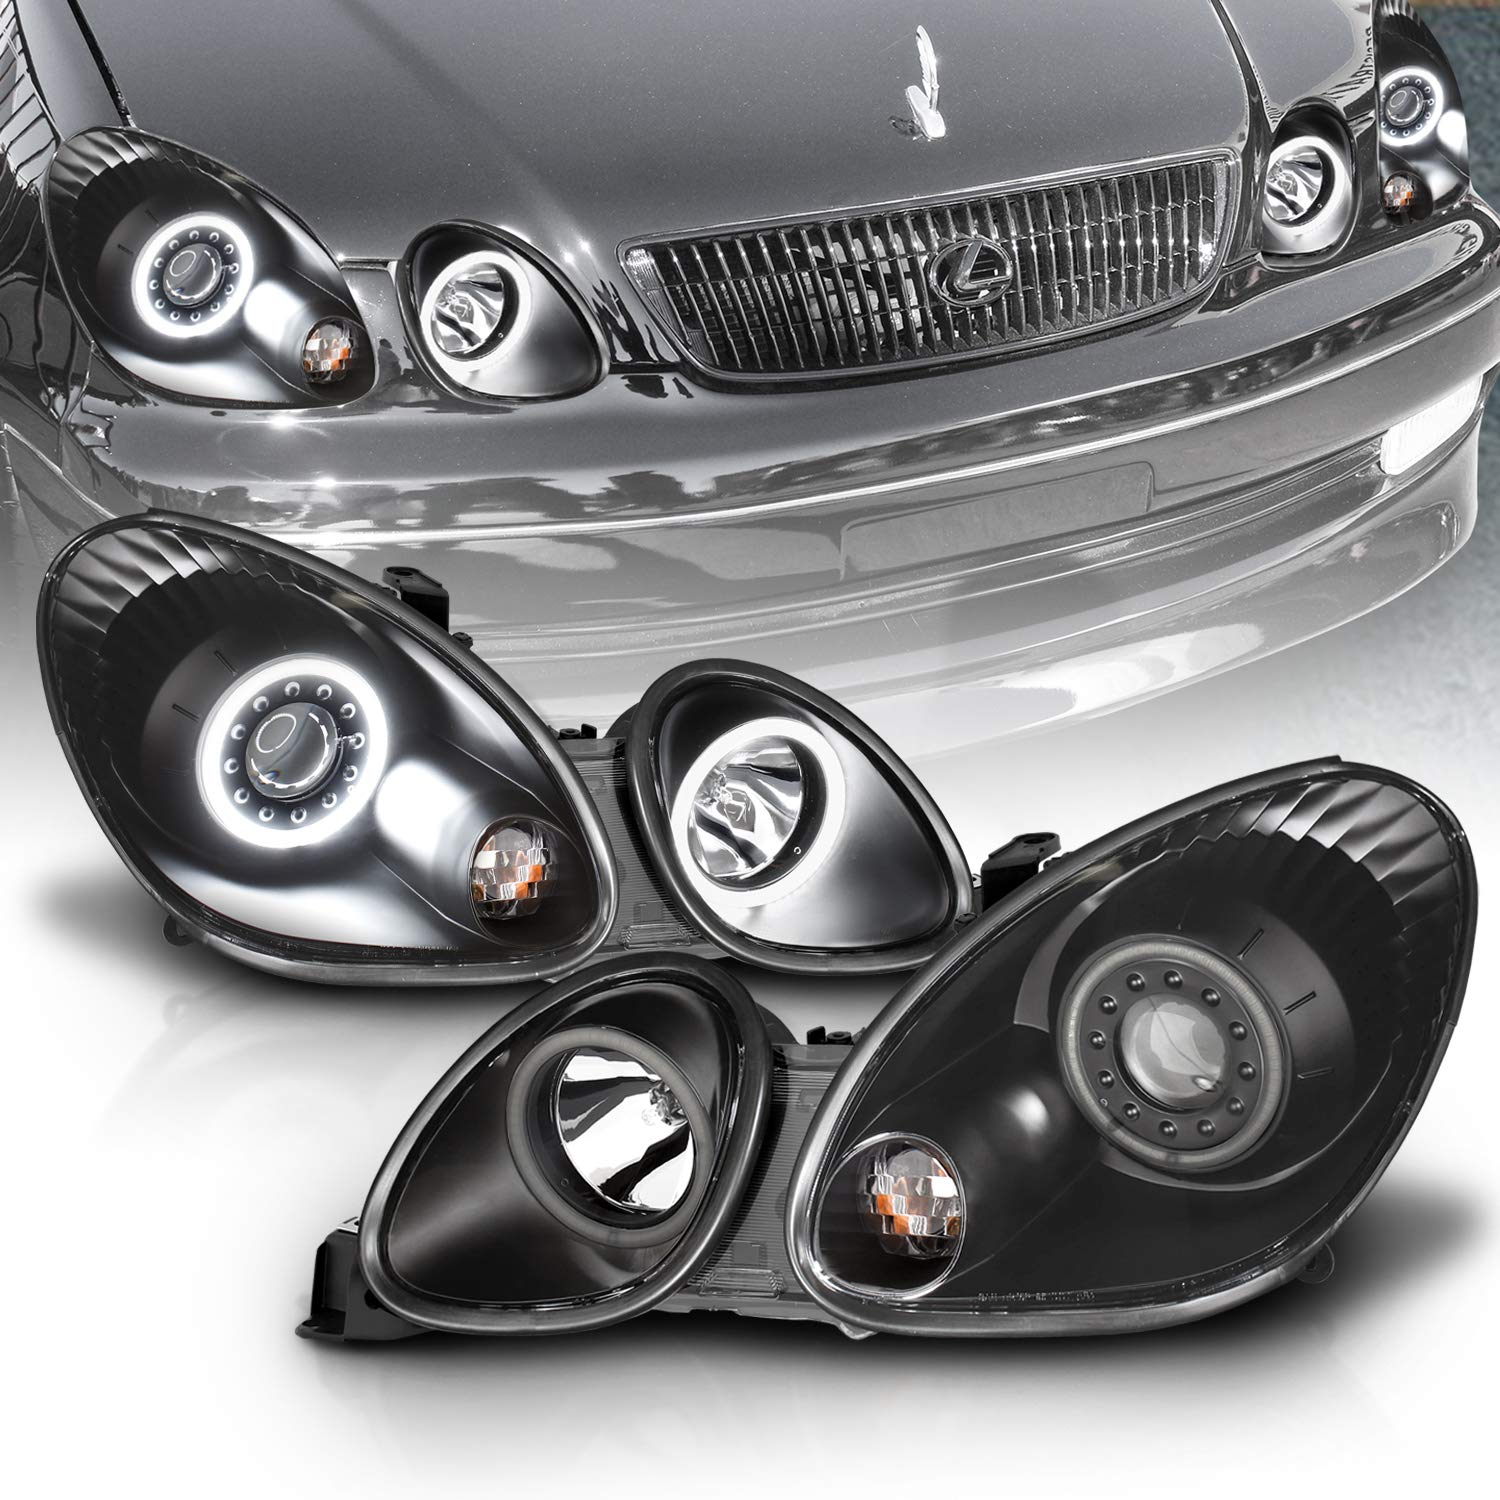 AmeriLite Black Projector Headlights Ultra Bright LED Halo For Lexus GS 300/400 - Passenger and Driver Side